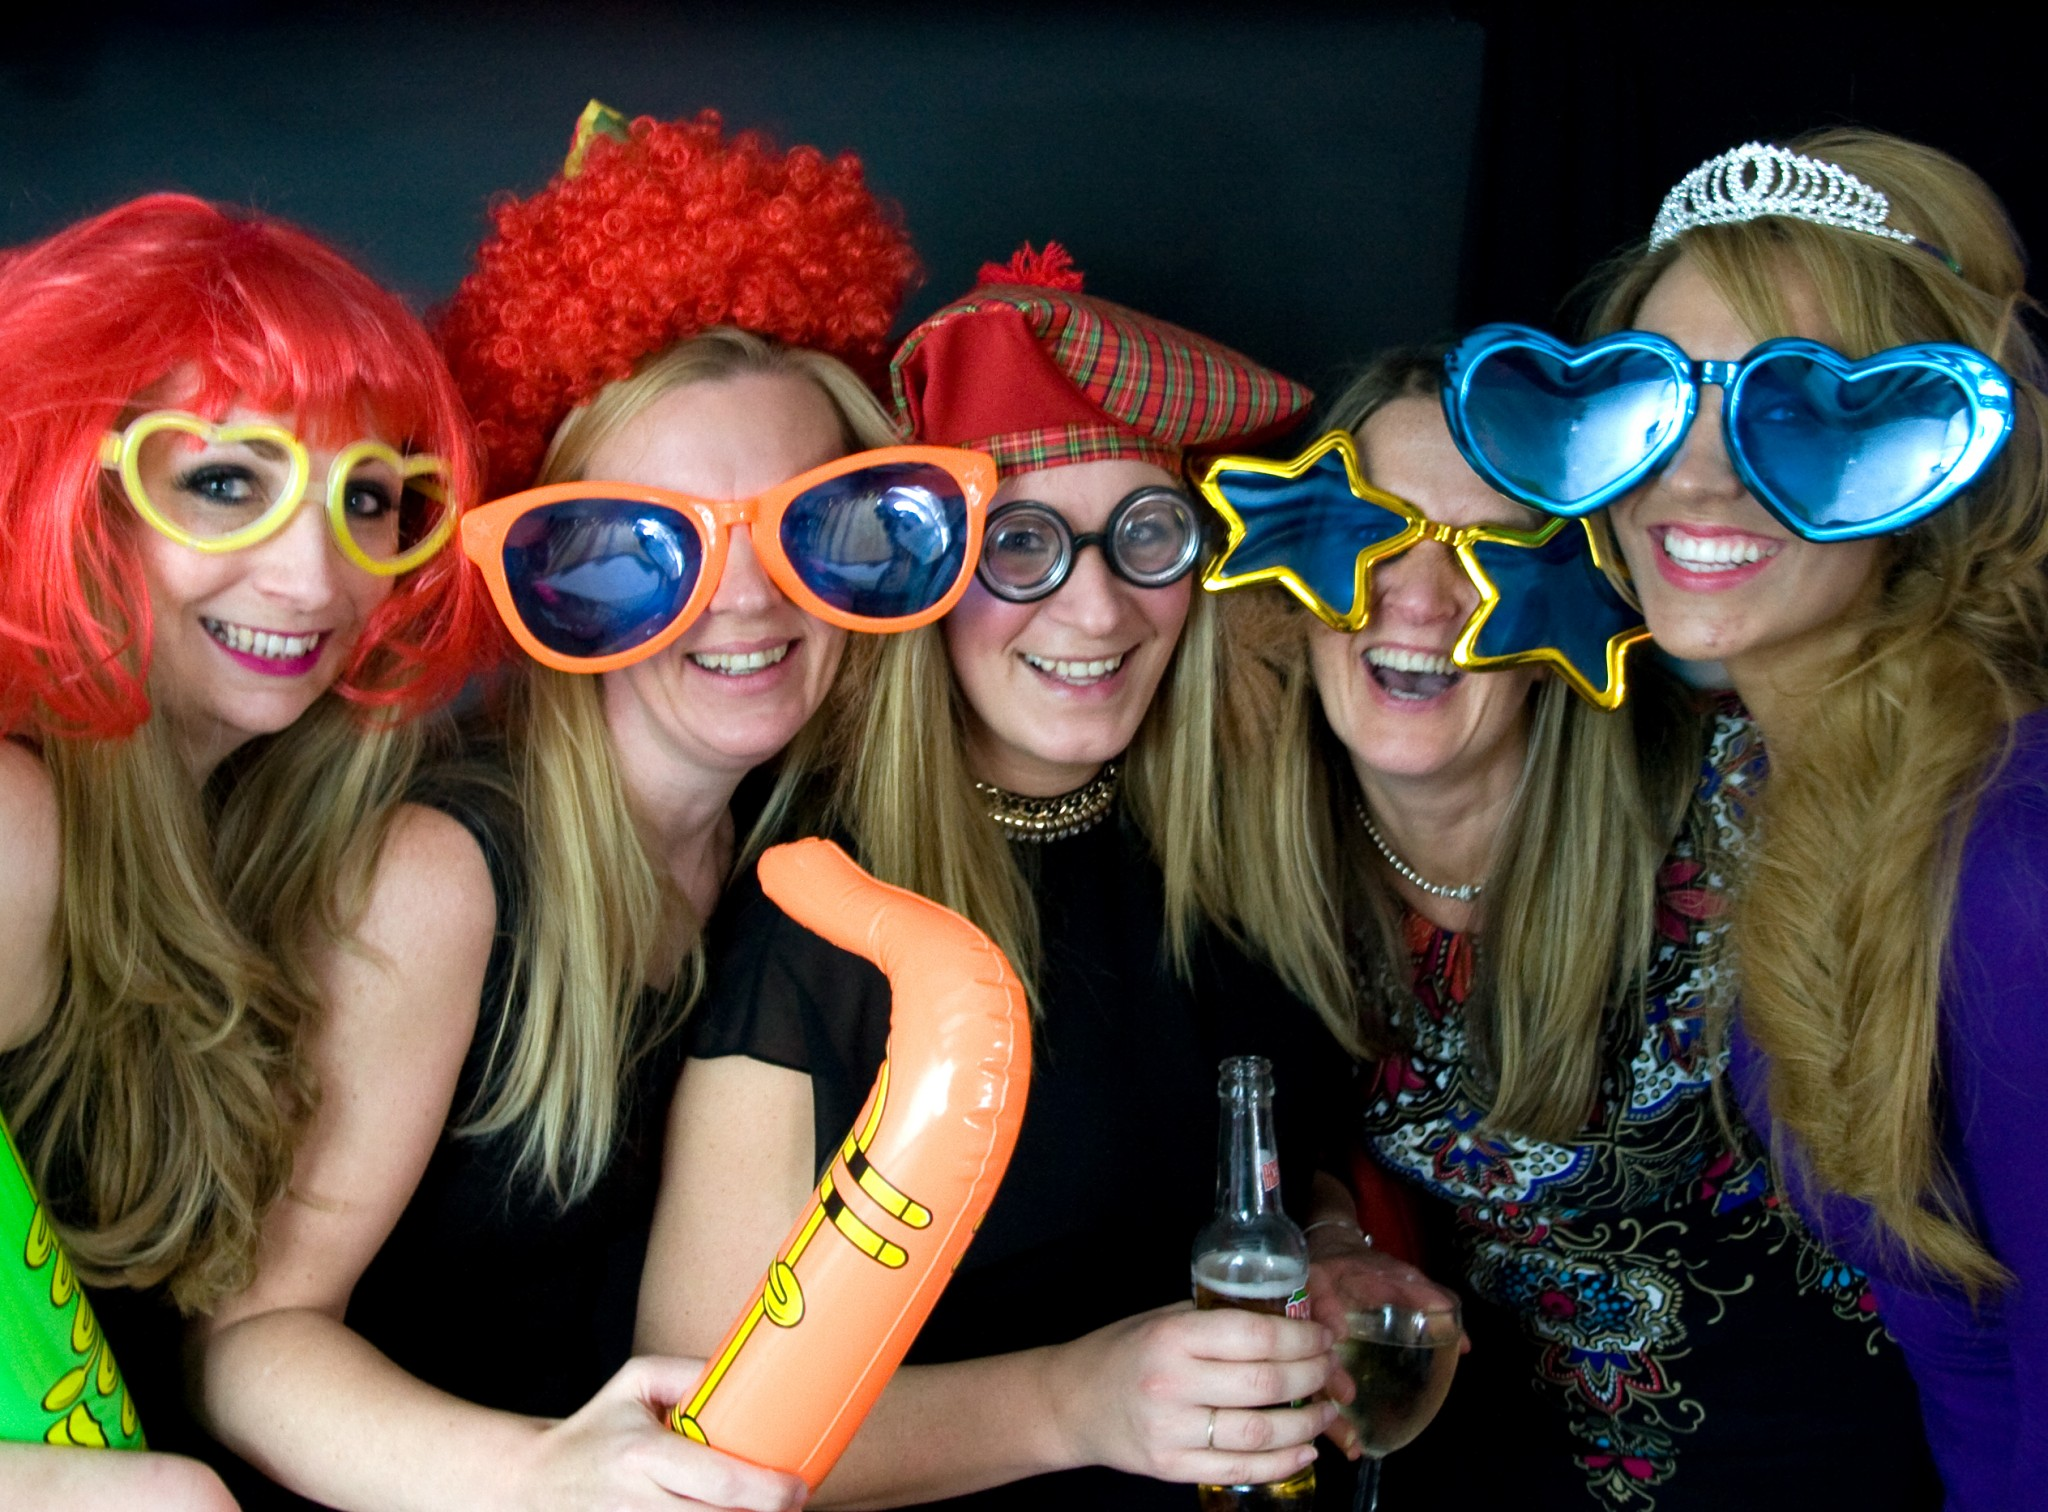 photo-booth-style-photography_9572